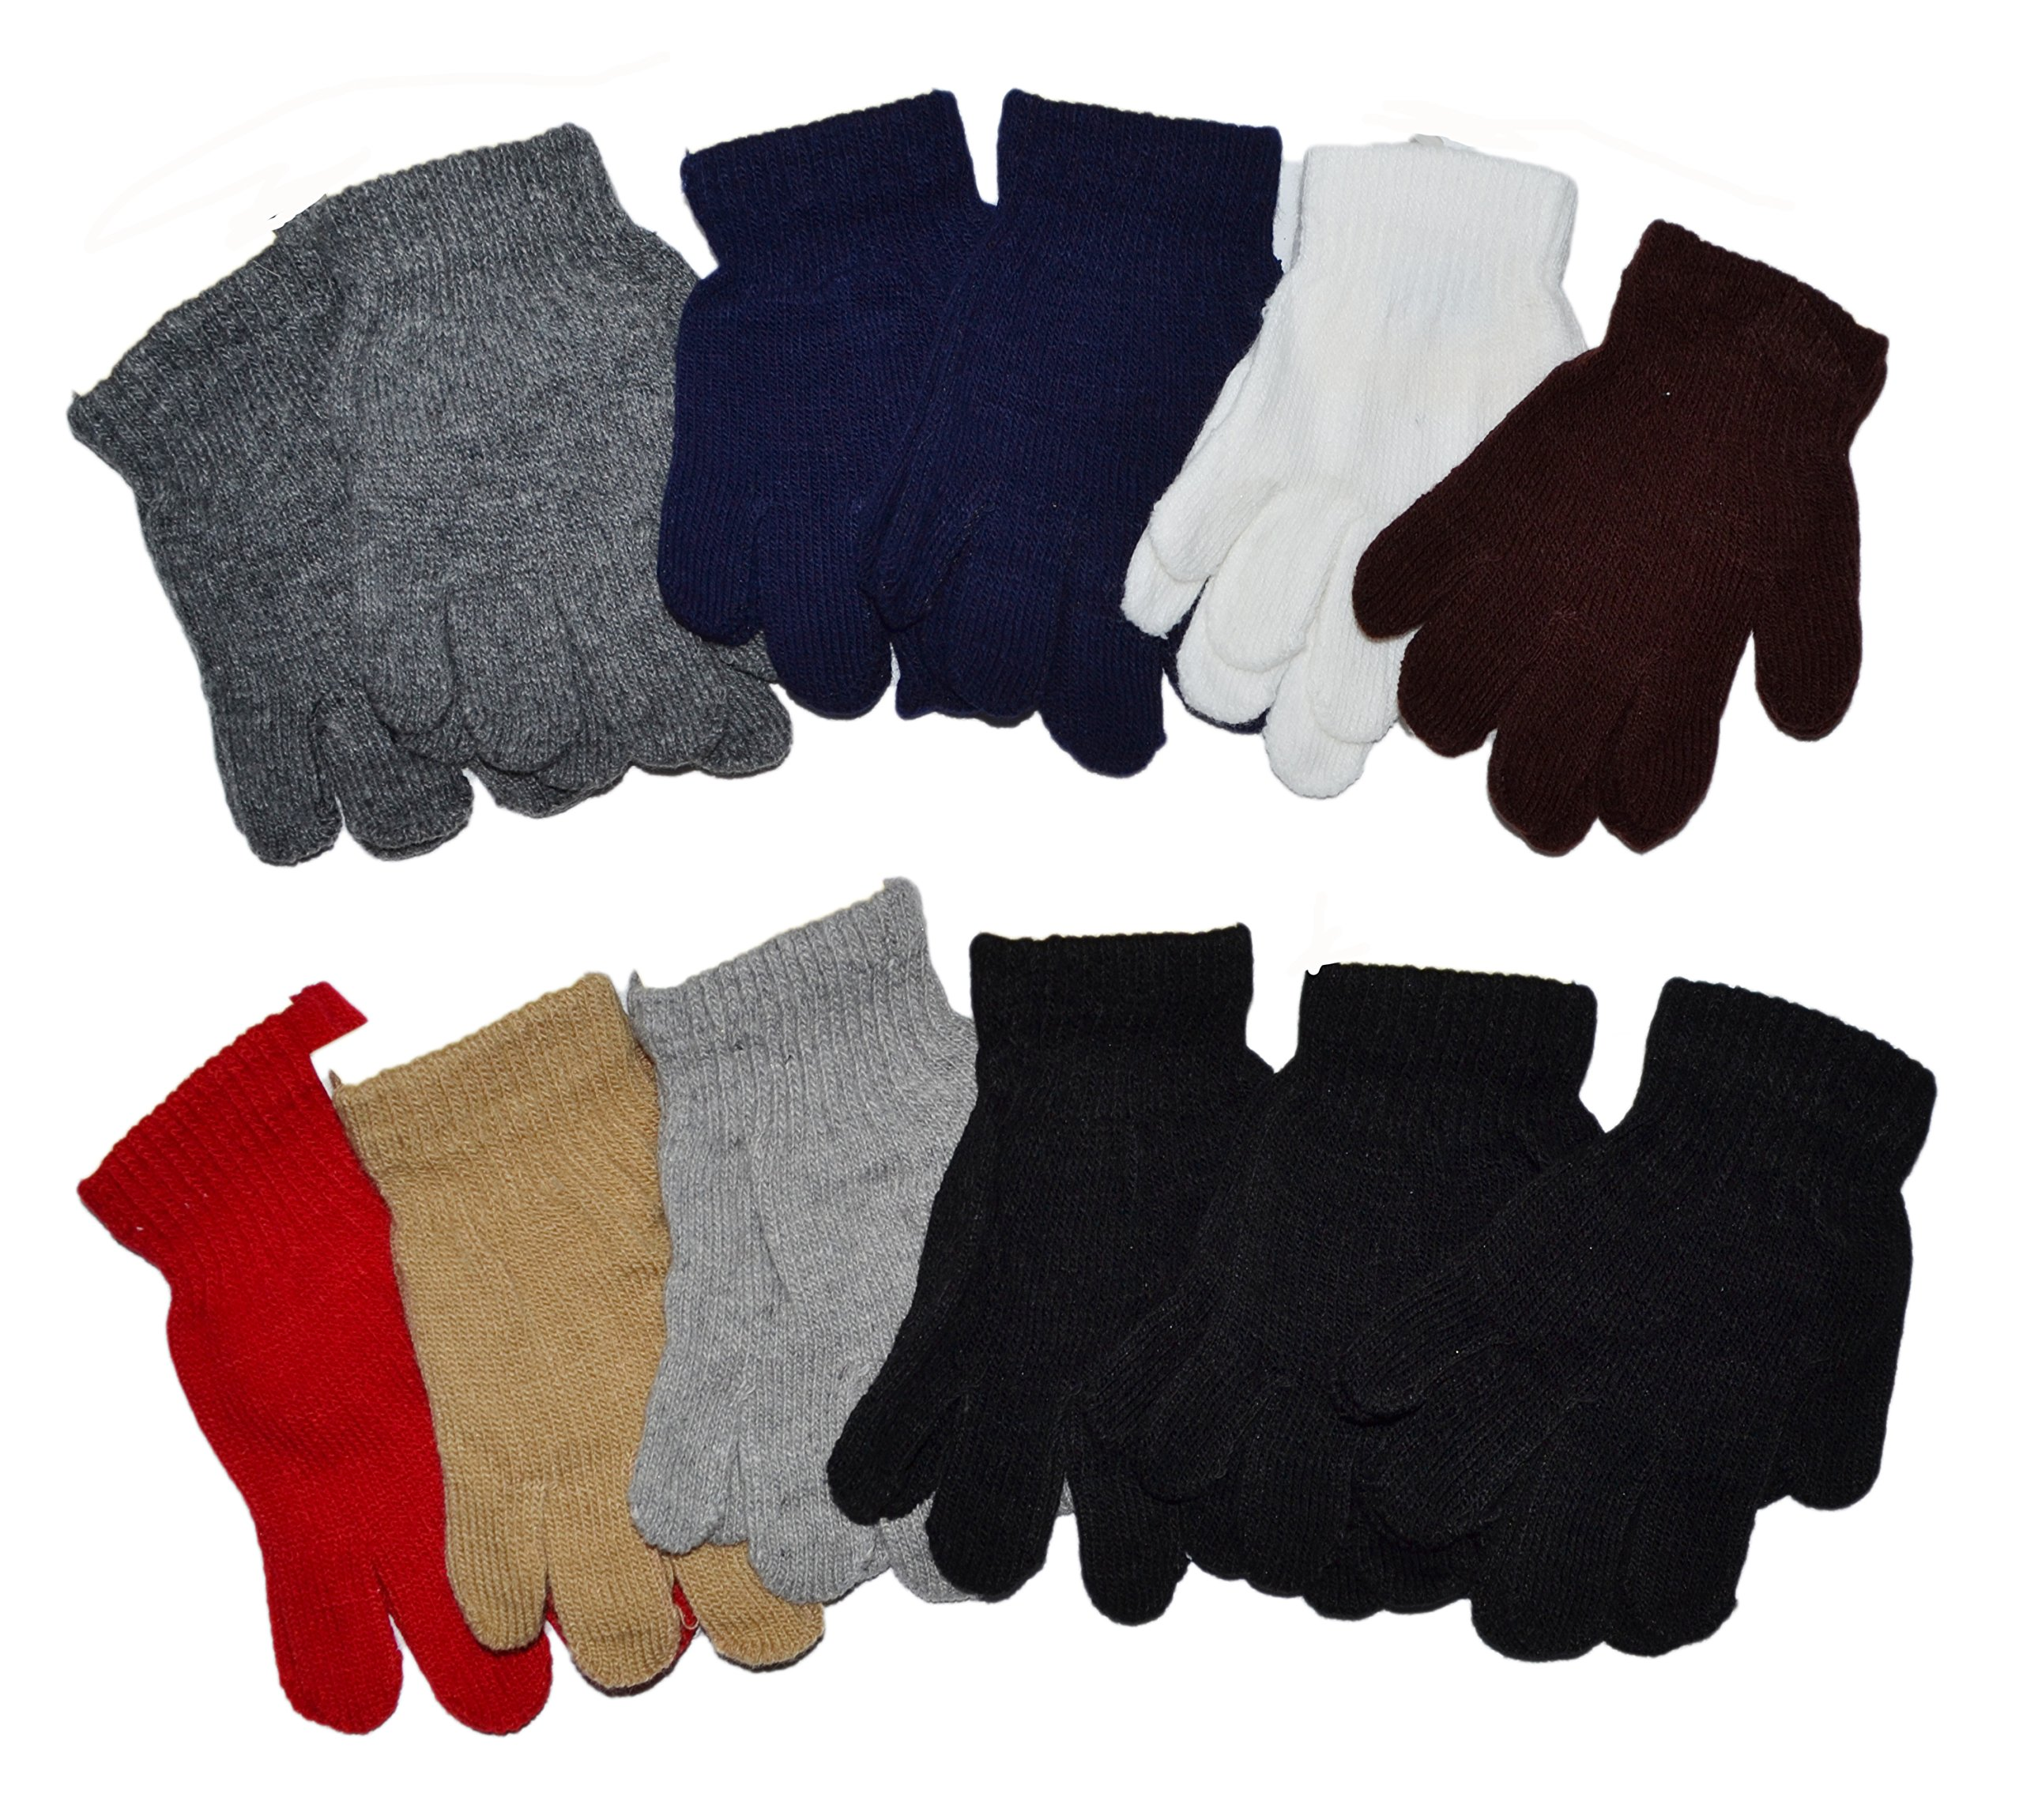 OPT Brand. Kids Magic Gloves Children Knit Gloves Wholesale 12 Pairs (1 to 5 years) (Assorted Color 1) by OPT (Image #1)